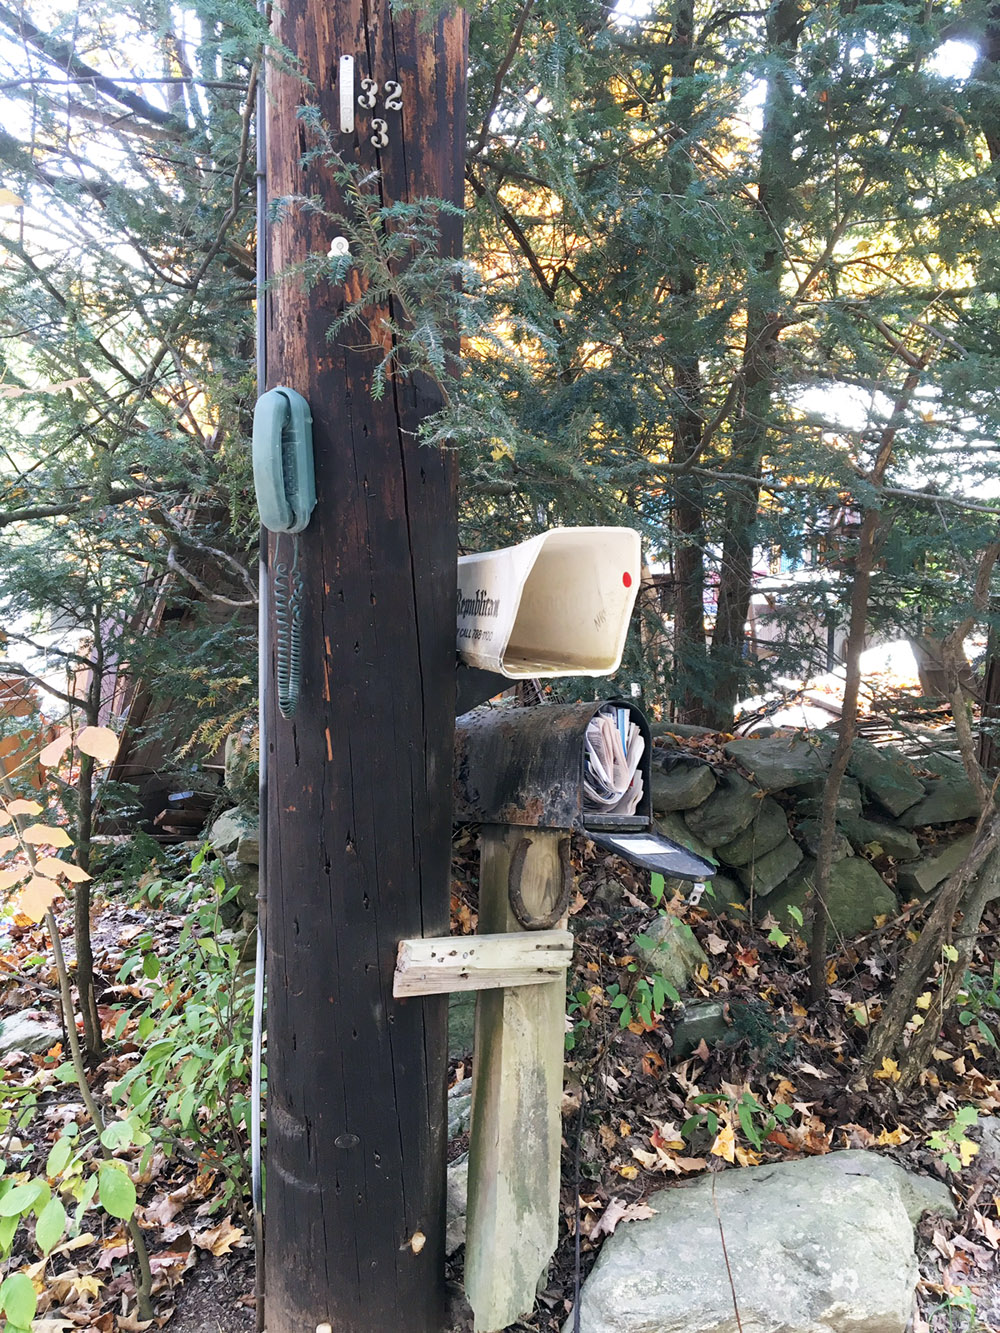 A telephone attached to a telegraph pole in rural USA.